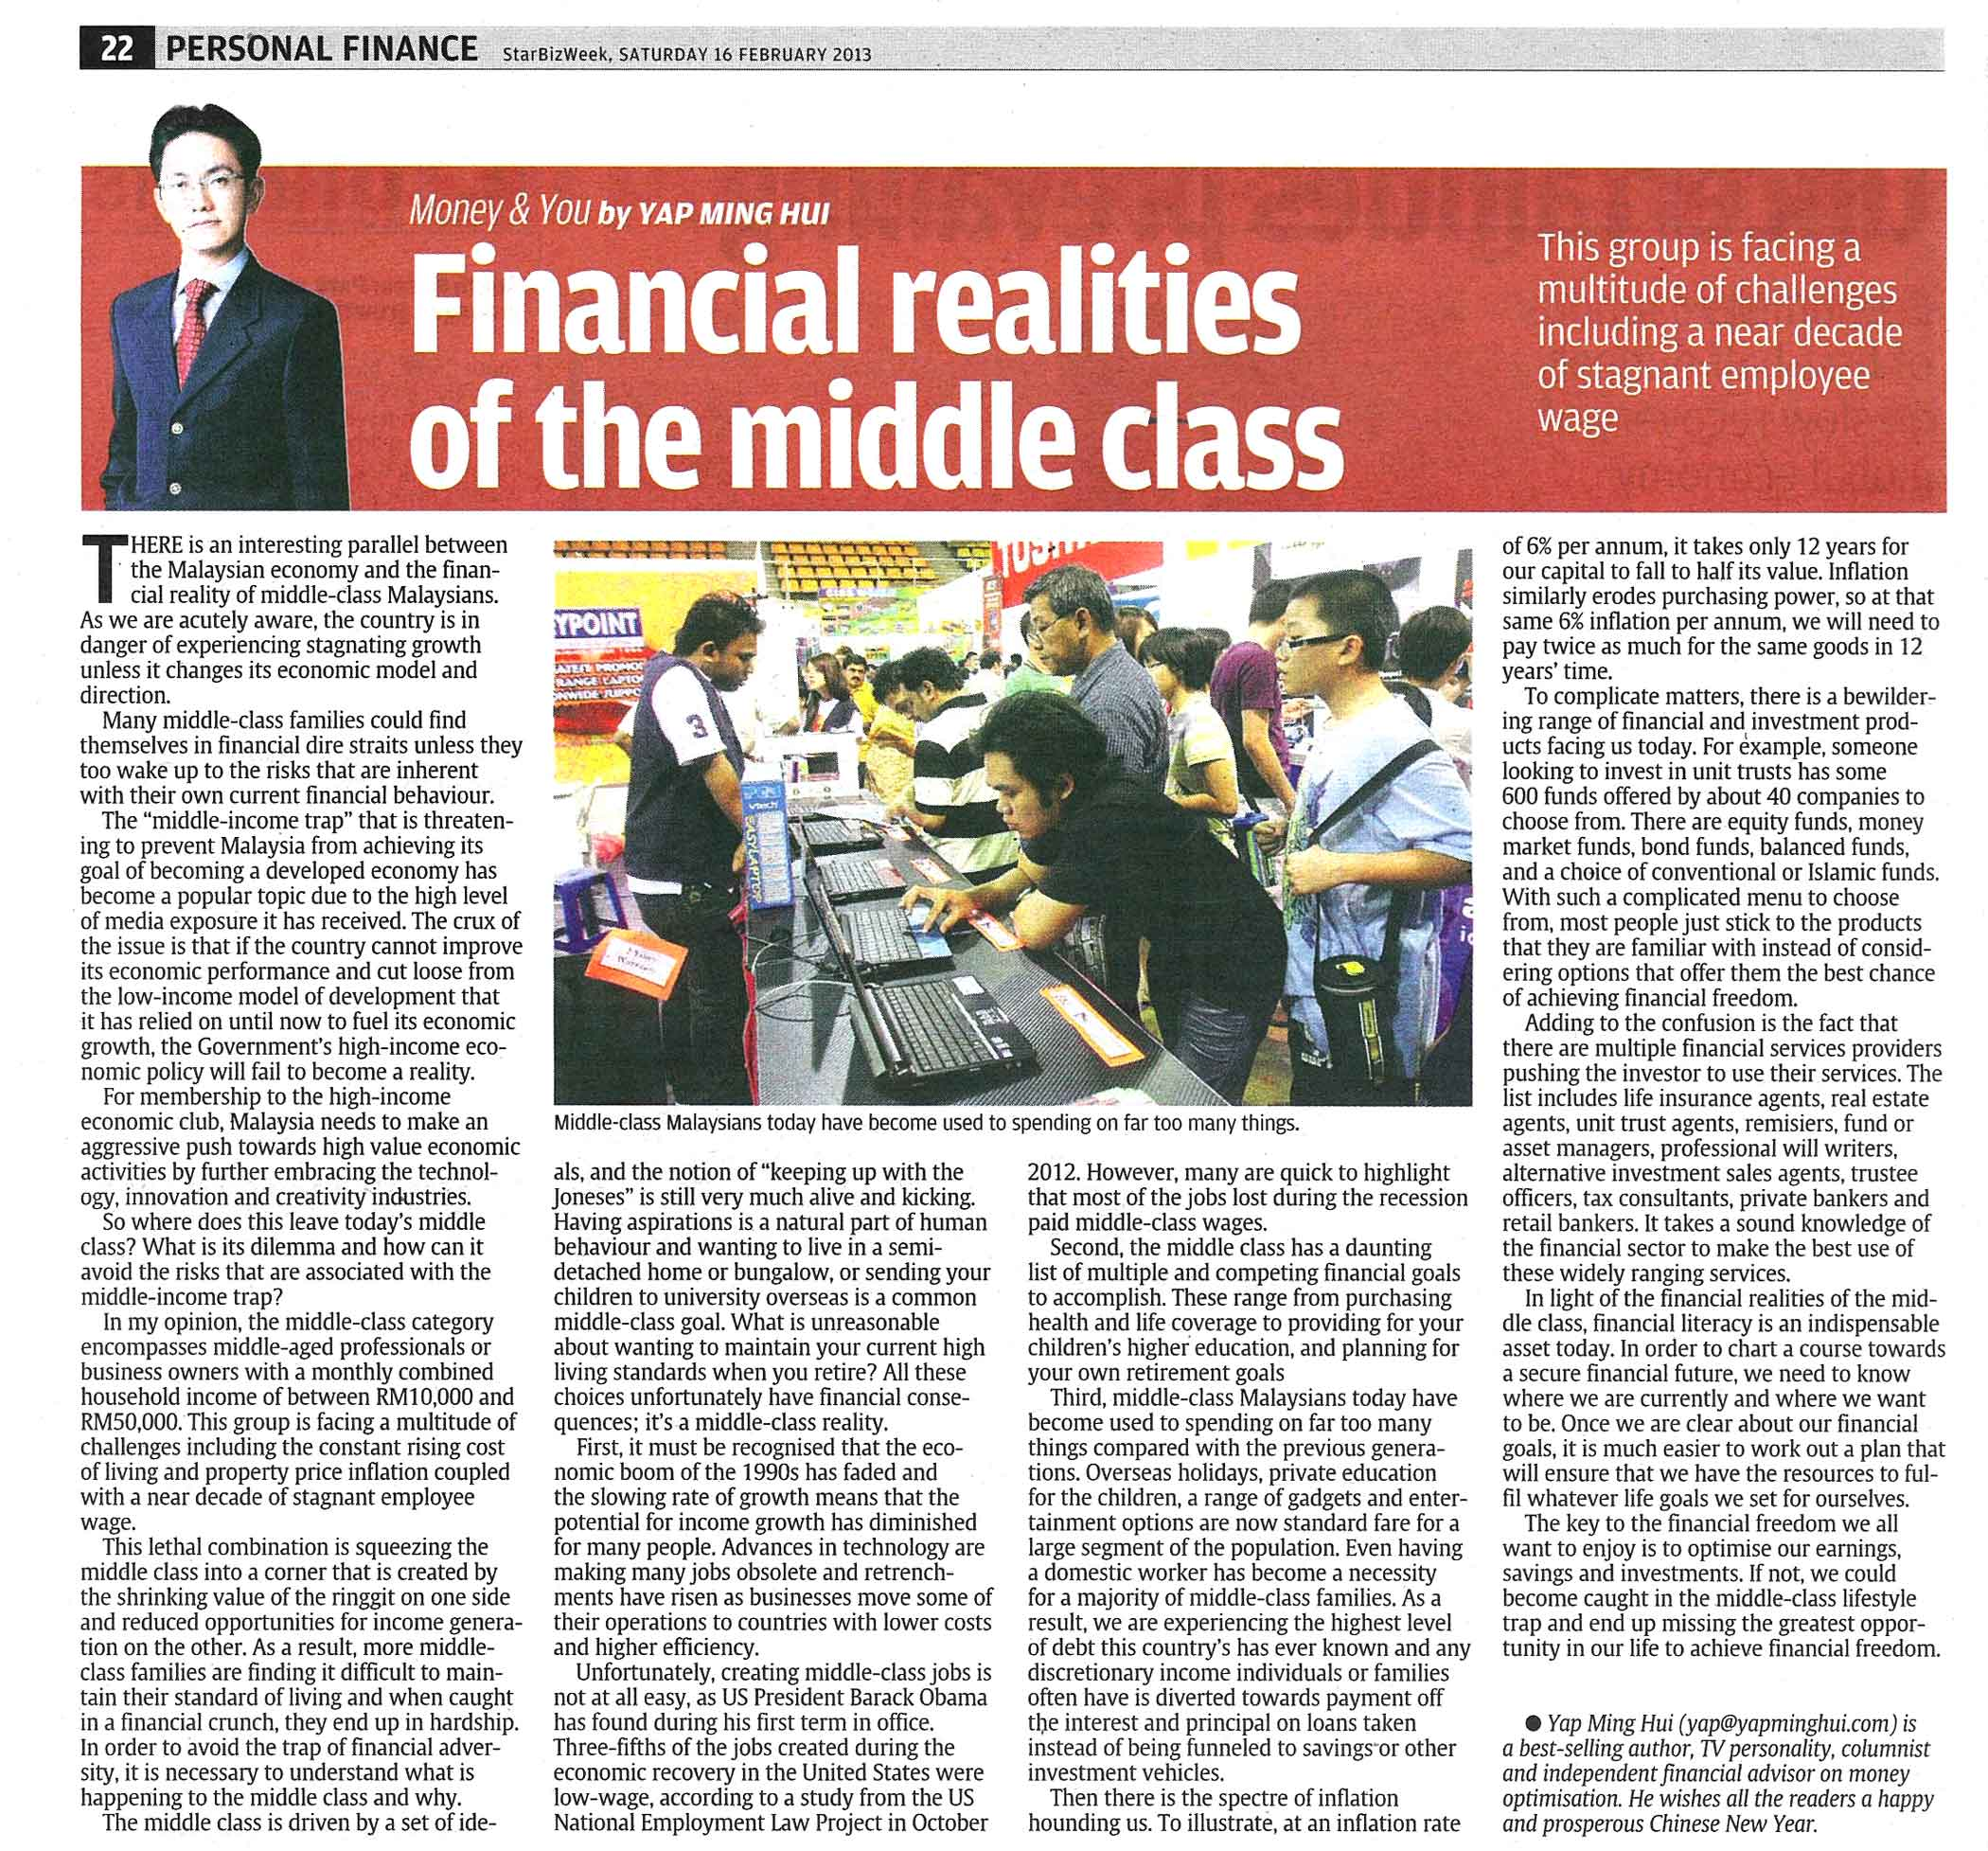 Financial Realities of the Middle Class - 16 Feb 2013